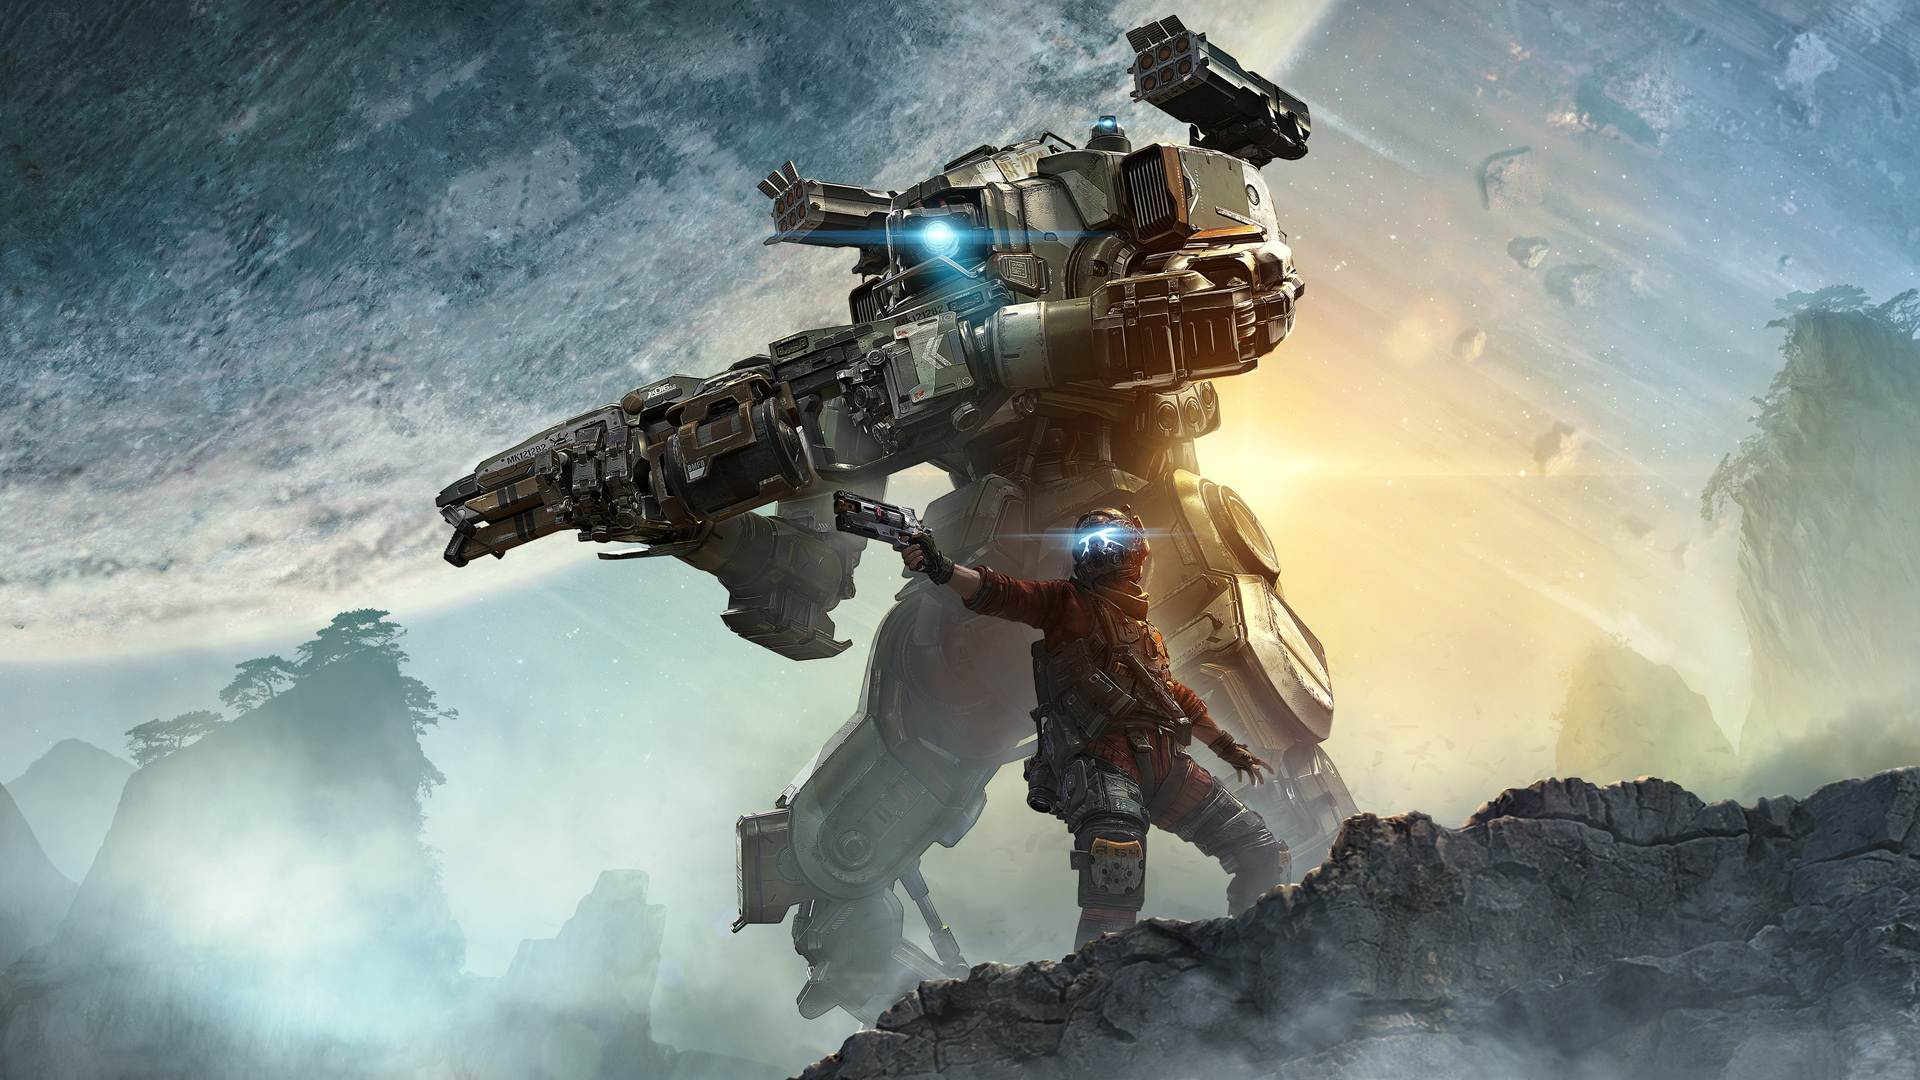 titanfall 2 game wallpaper 61743